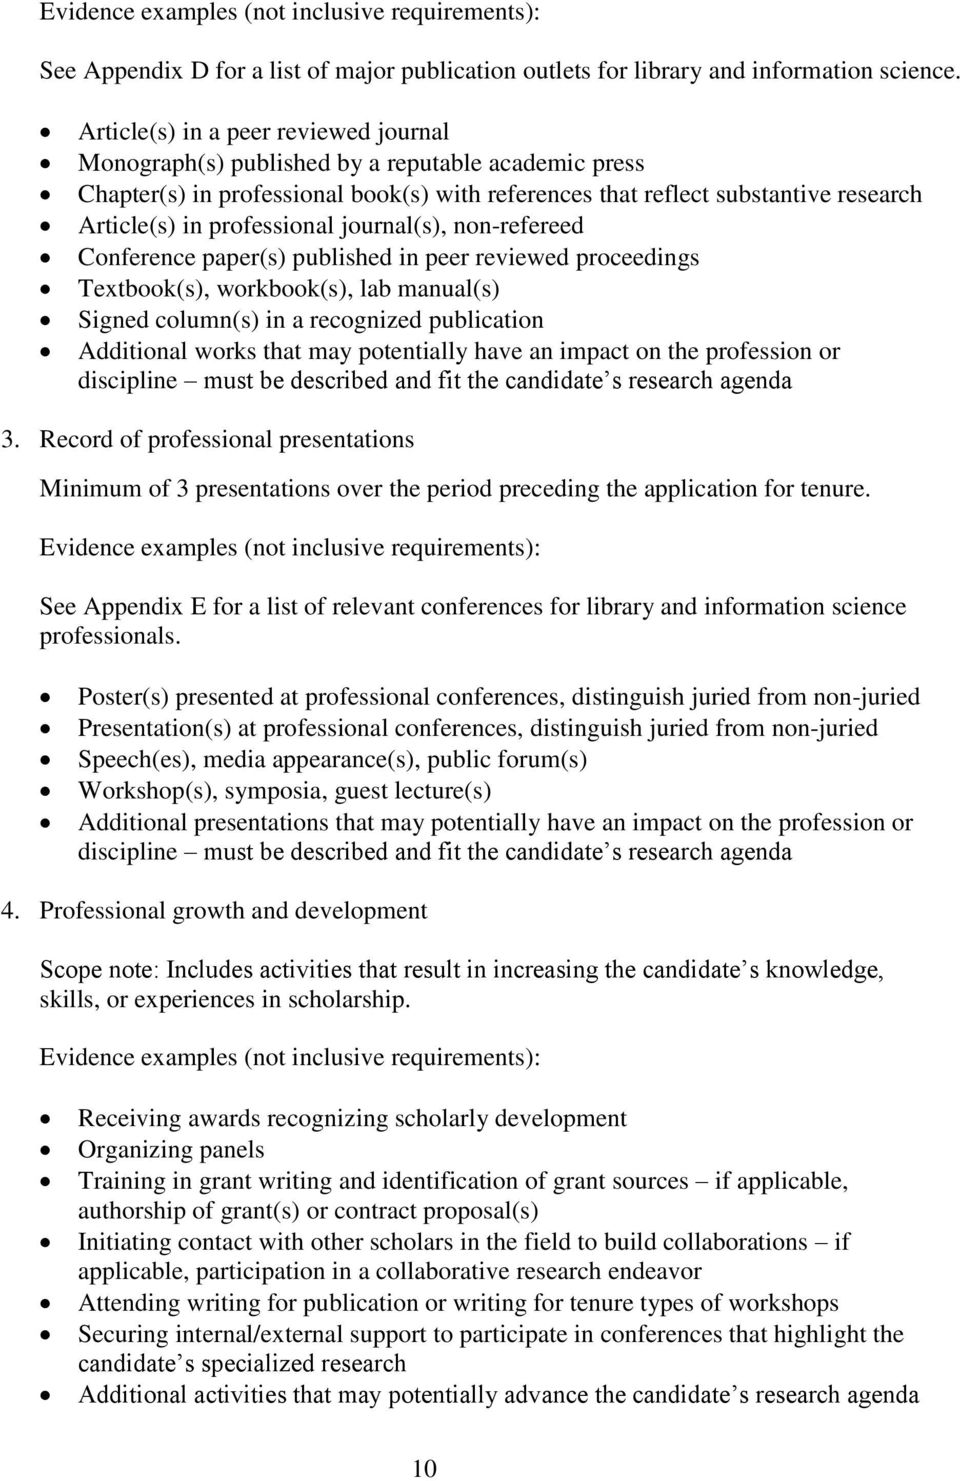 professional journal(s), non-refereed Conference paper(s) published in peer reviewed proceedings Textbook(s), workbook(s), lab manual(s) Signed column(s) in a recognized publication Additional works